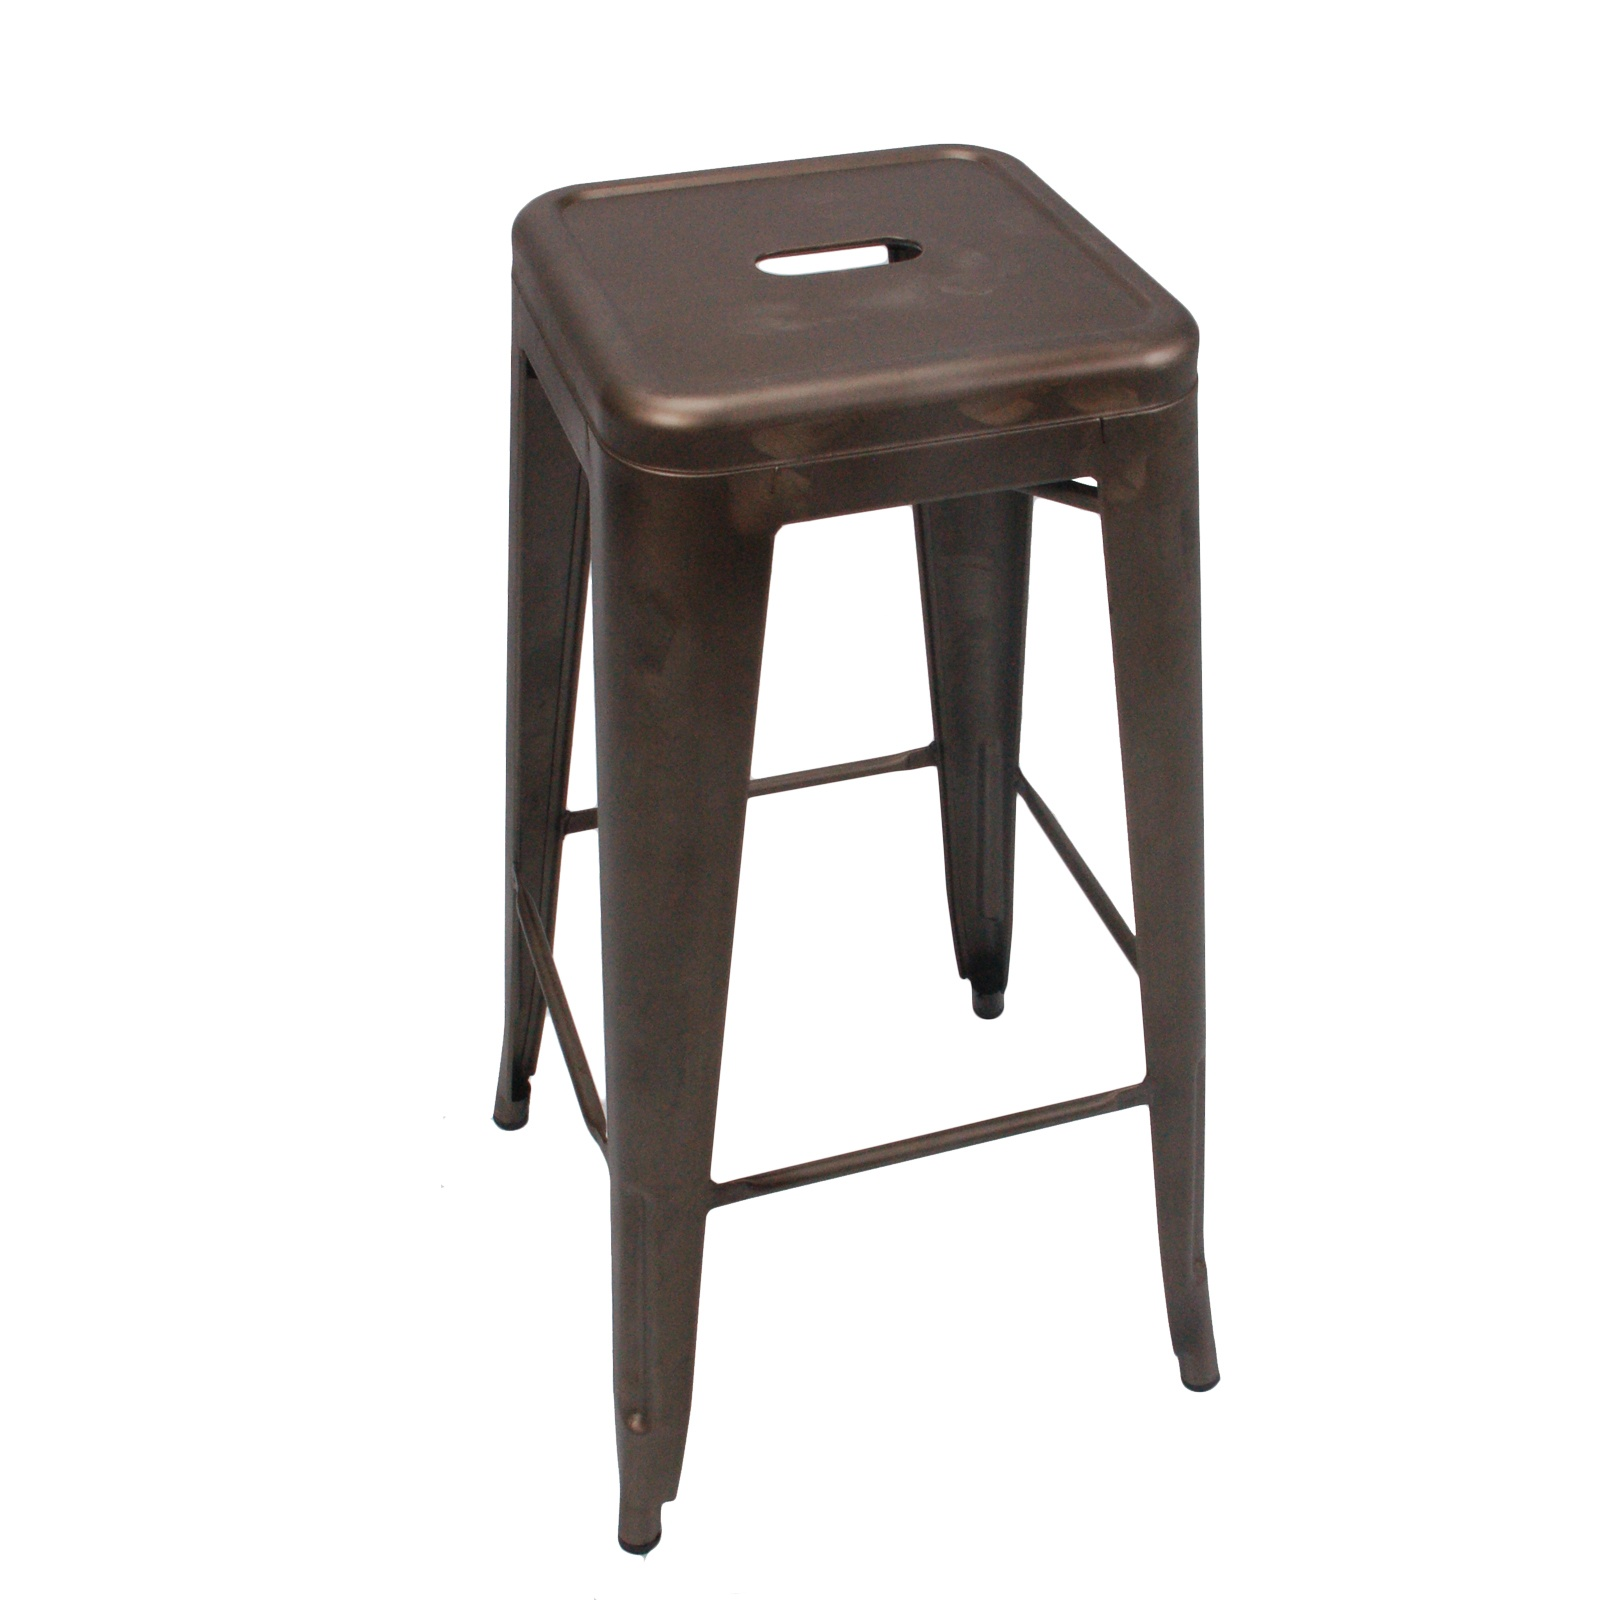 Tabouret Bar Tolix Tabouret Bar Stool Rentals Event Furniture Rental Delivery